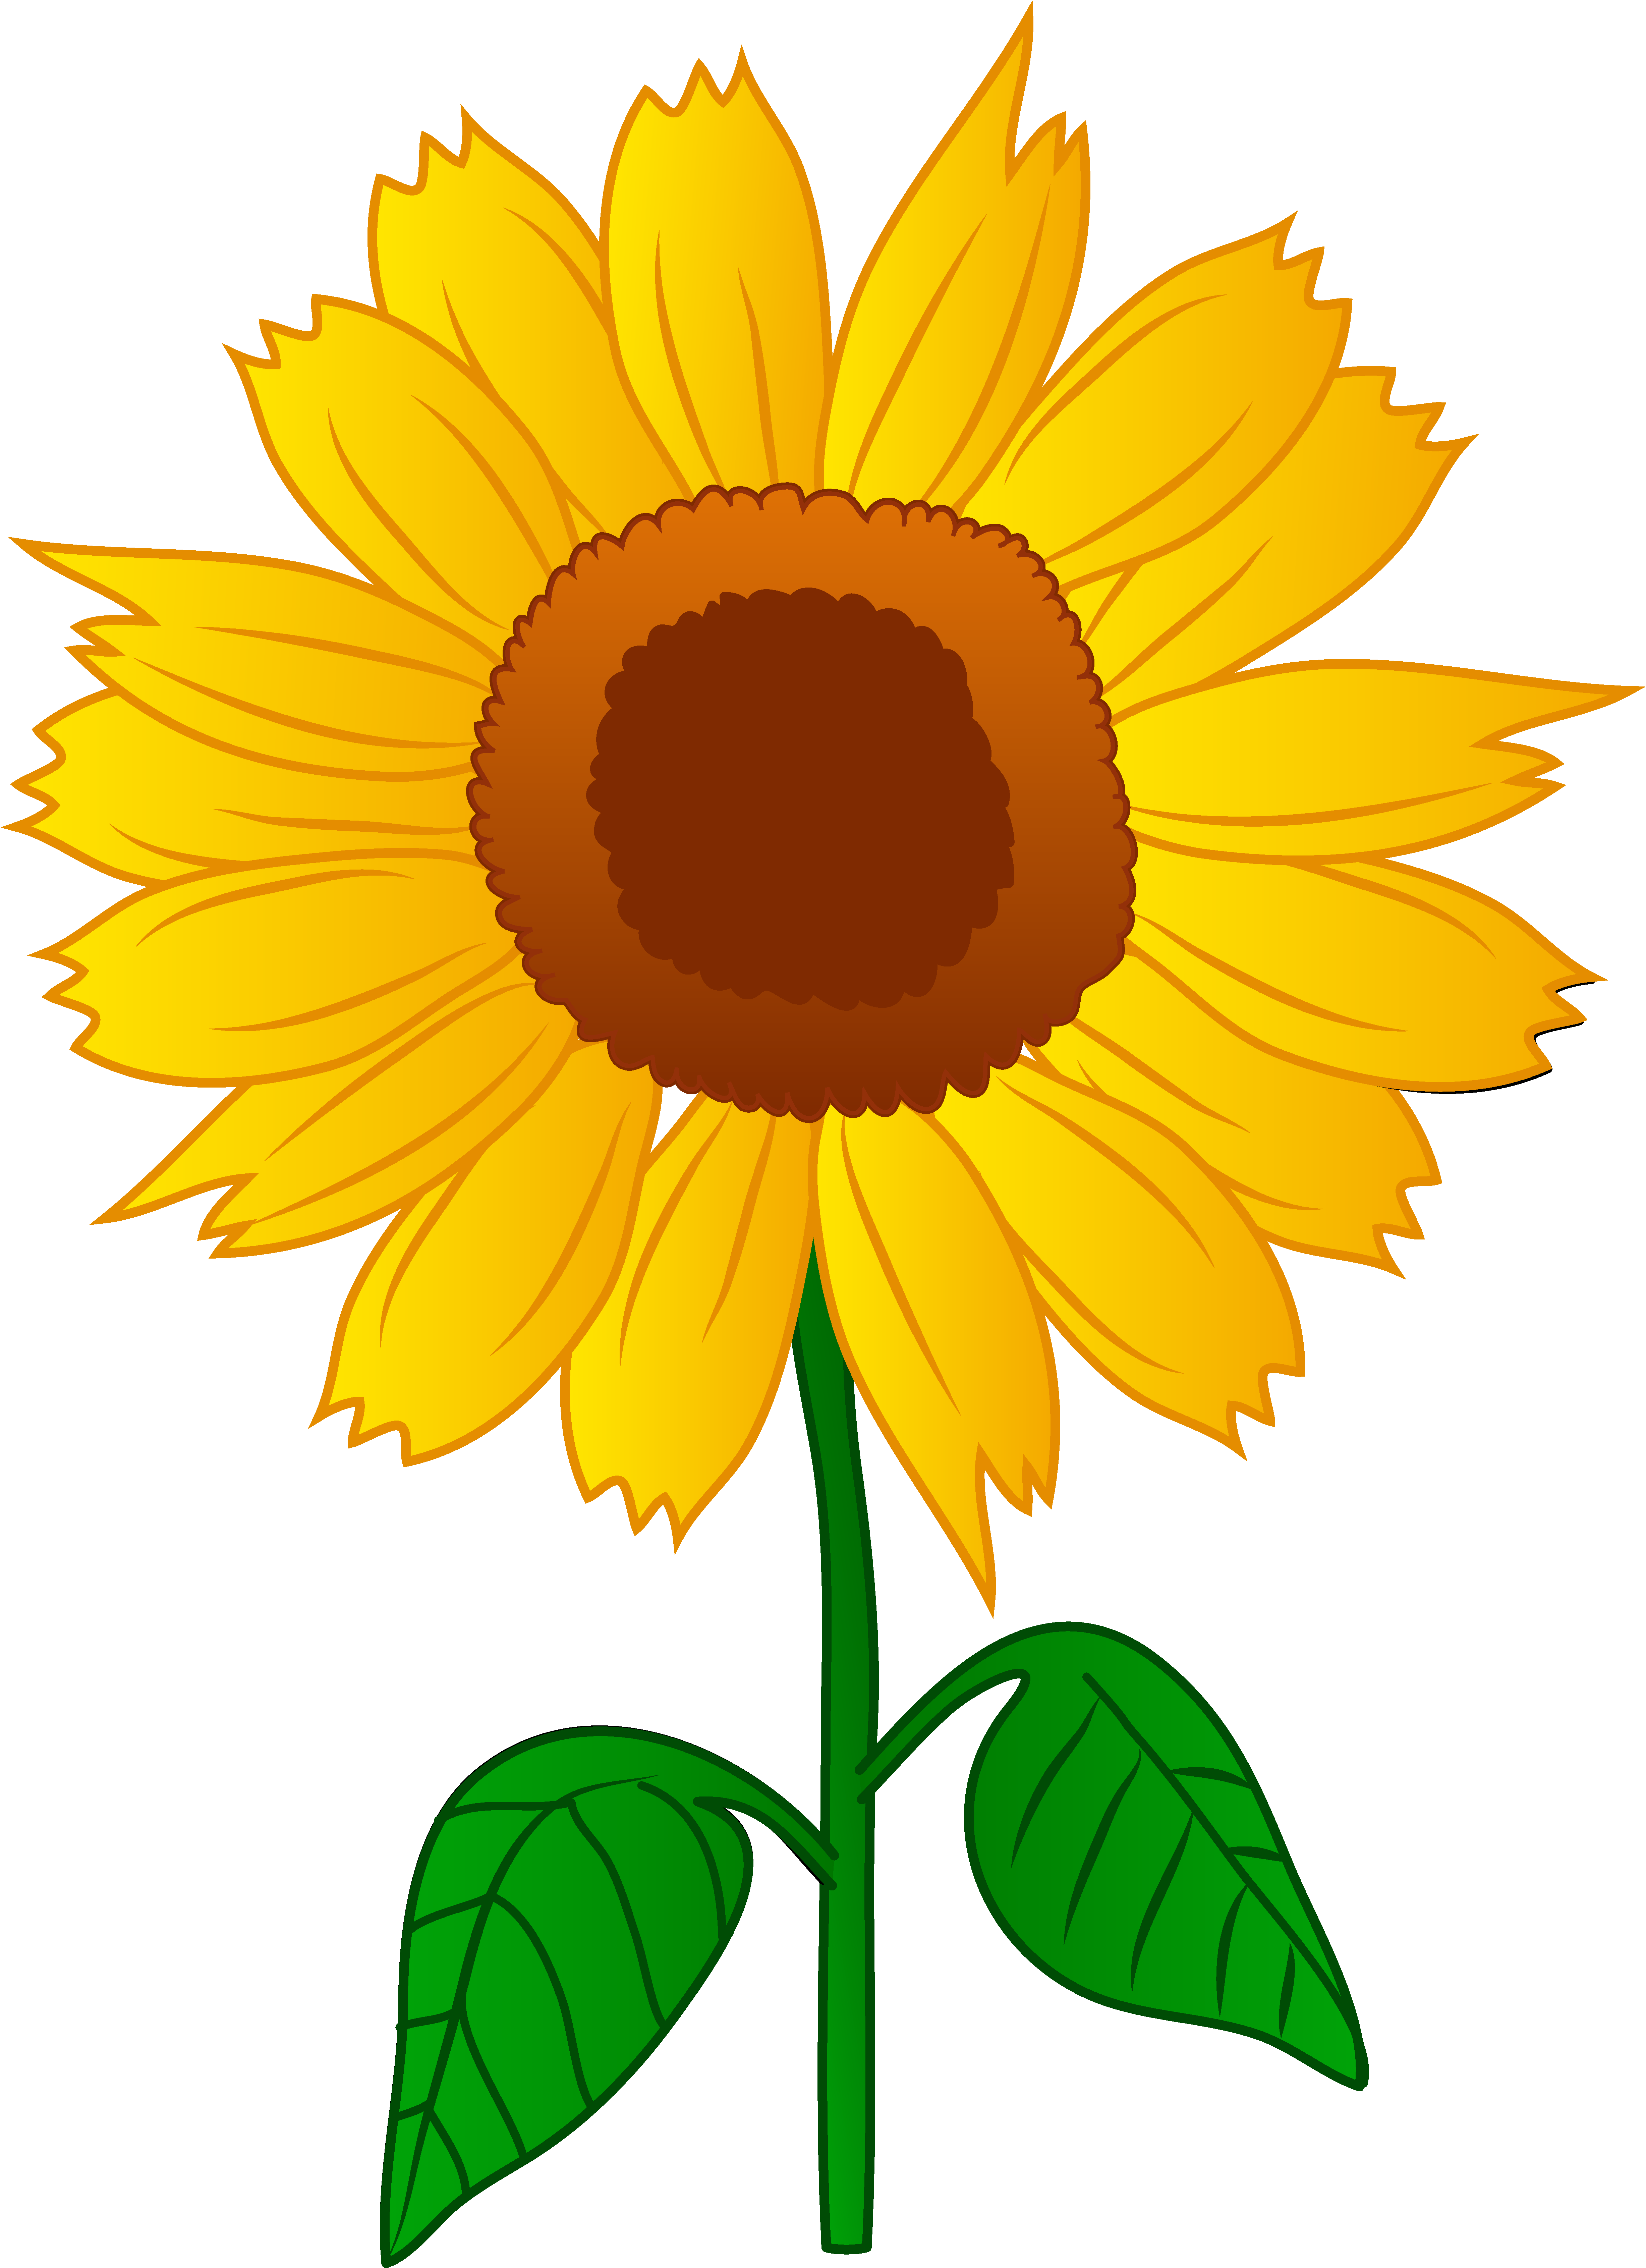 Sunflower clipart #4, Download drawings